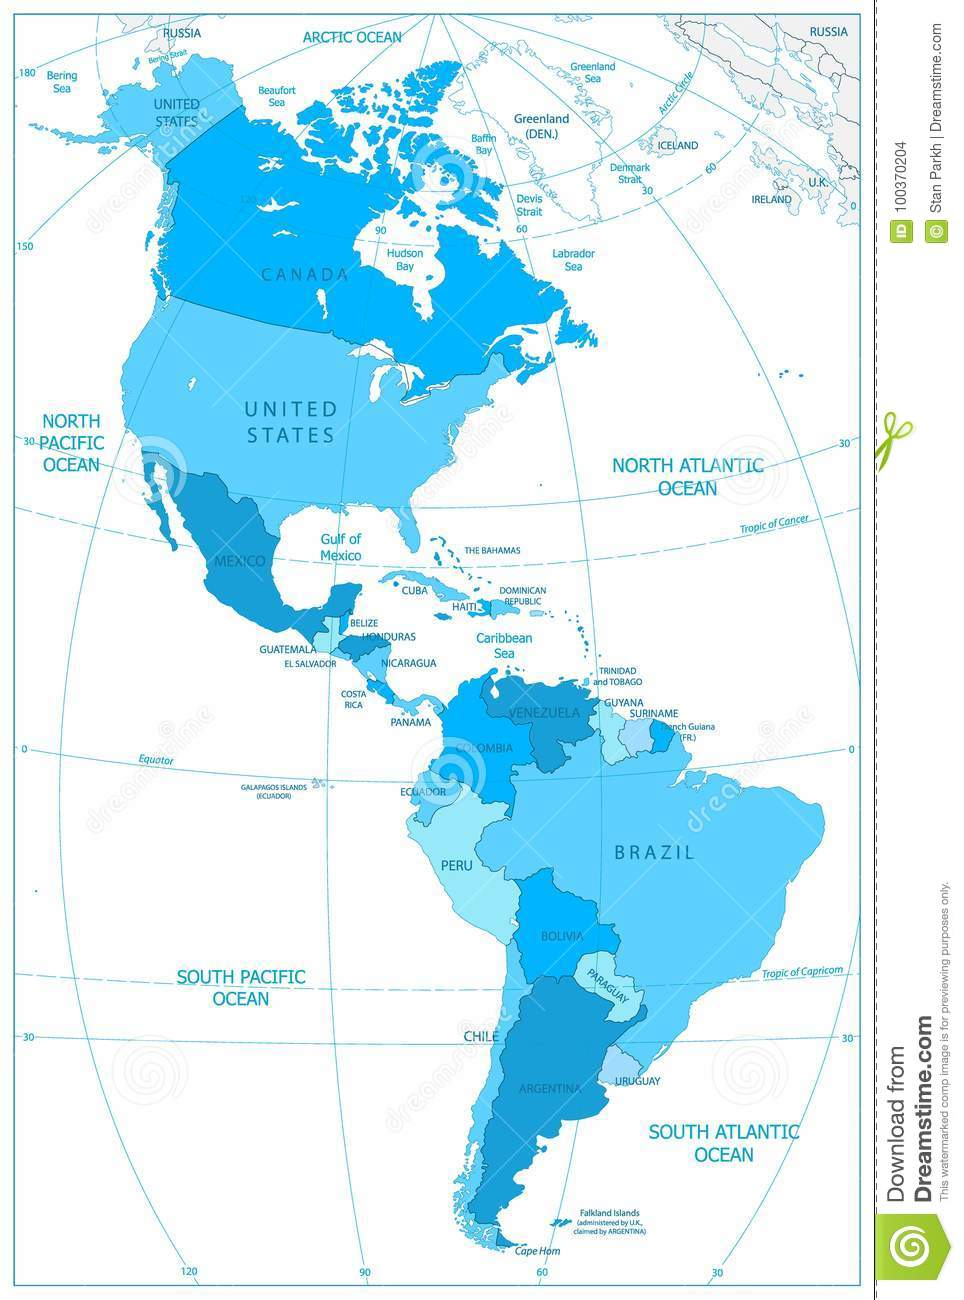 North And South America Map In Colors Of Blue Stock Vector ... on map of israel and america, map of japan and america, map of africa and america, map of canada and america, map of oceania and america, map of australia and america, map of ireland and america, map of cuba and america, map of south america and america, map of holland and america, map of caribbean and america, map of western europe and america, map of united states and america, map of central america and america, map of puerto rico and america, map of germany and america, map of bahamas and america, map of china and america, map of mexico and america, map of alaska and america,